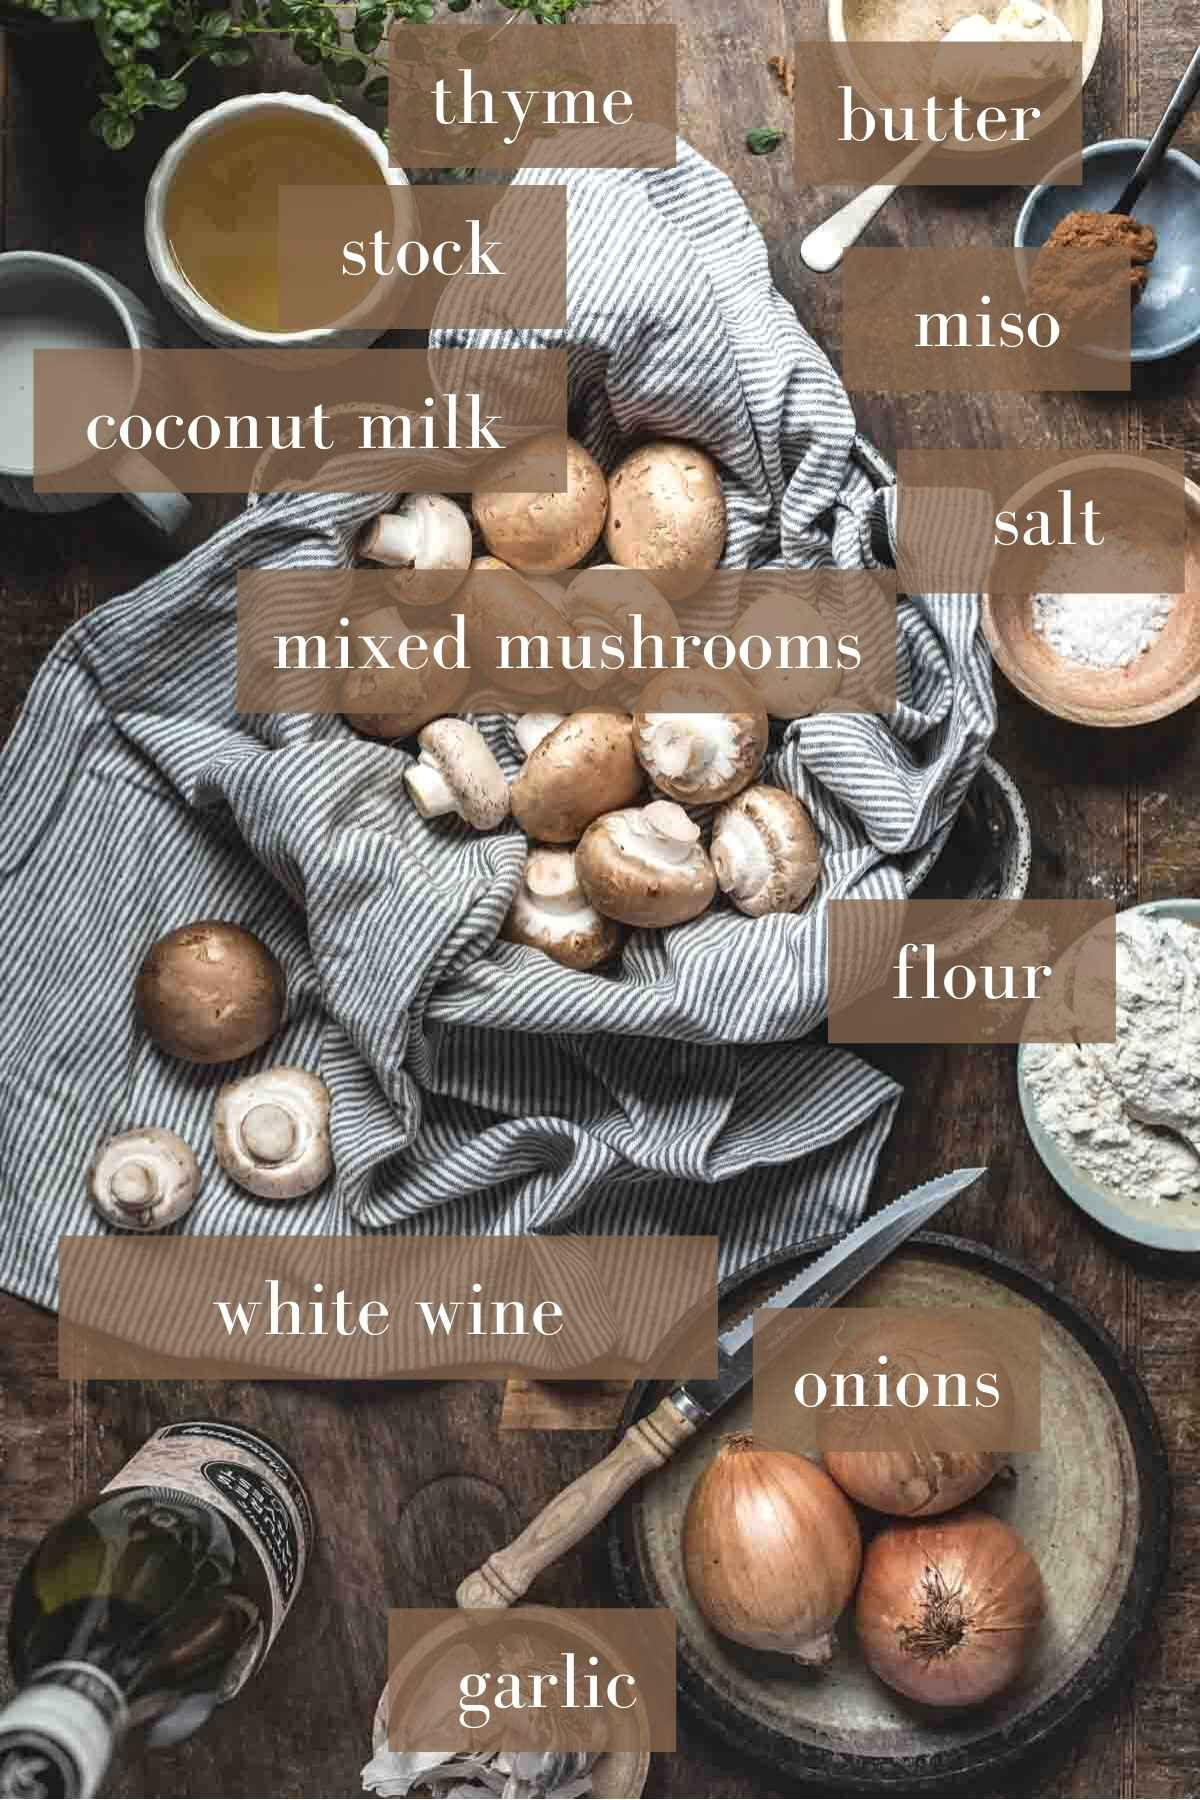 Mushroom soup ingredients on a wooden board with labels.